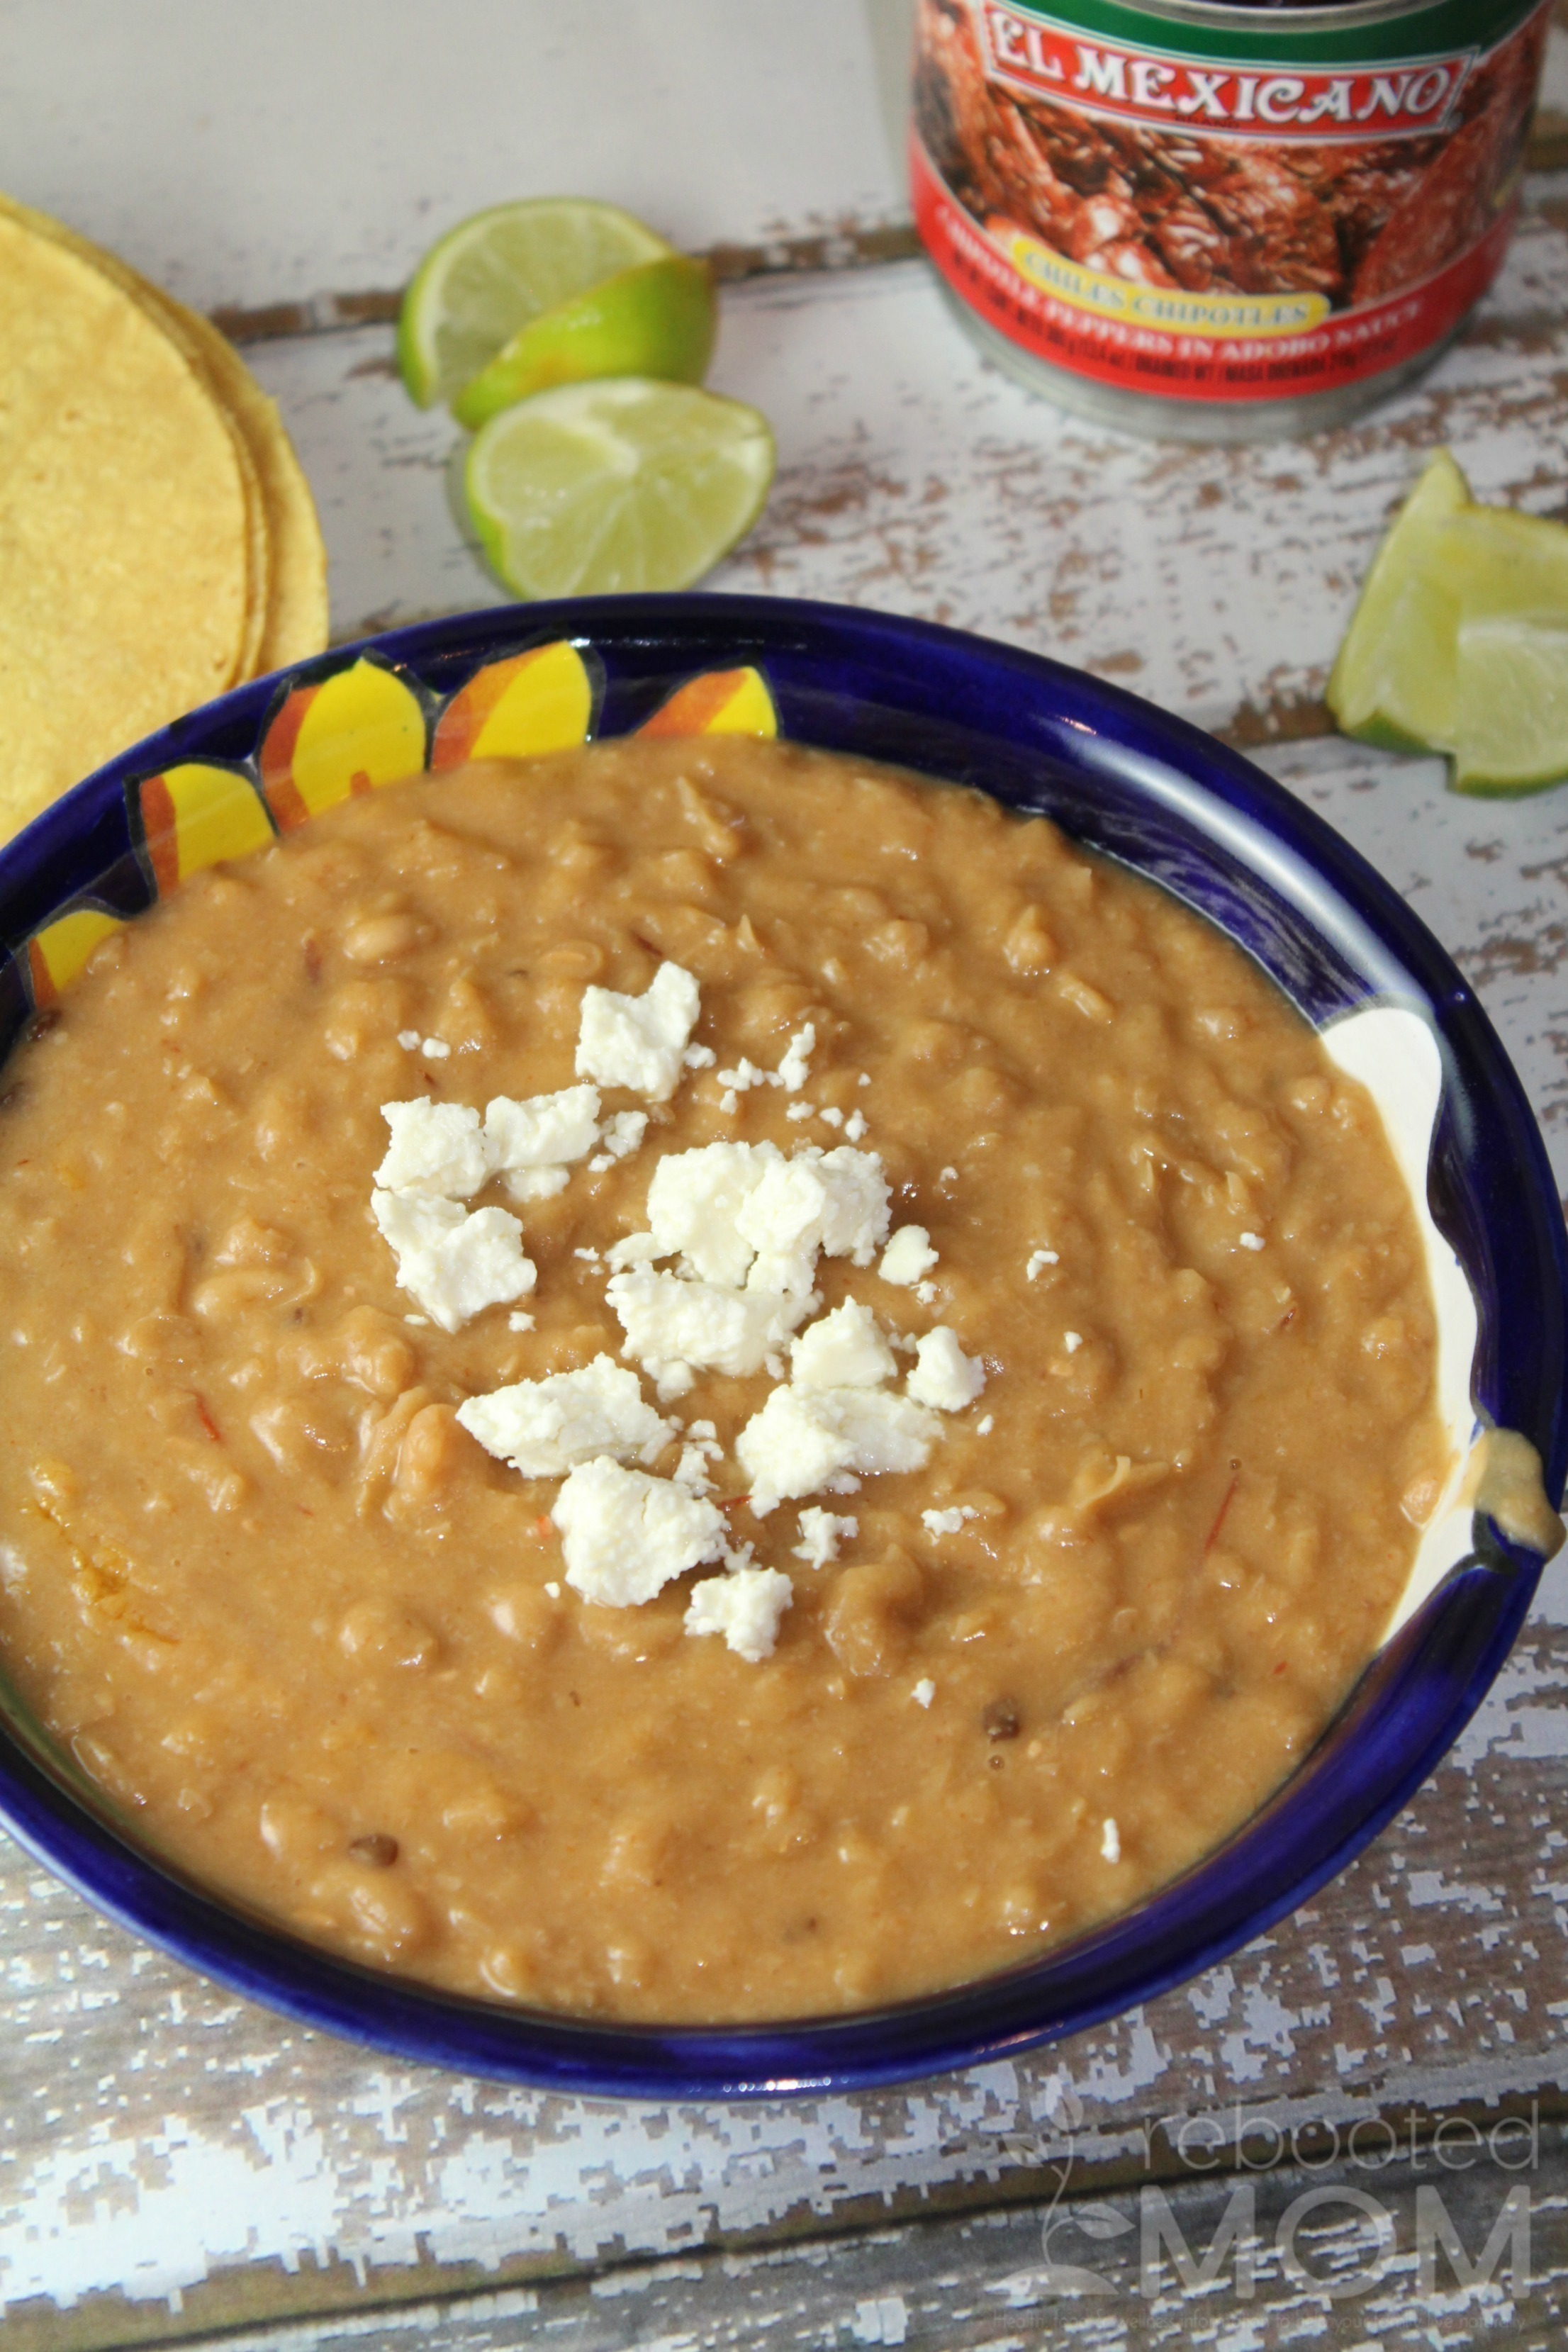 Combine peruano beans with a few chipotle peppers and chipotle sauce to make creamy refried beans with lots of zip that are perfect for burritos, enchiladas, or even for dipping tortilla chips.